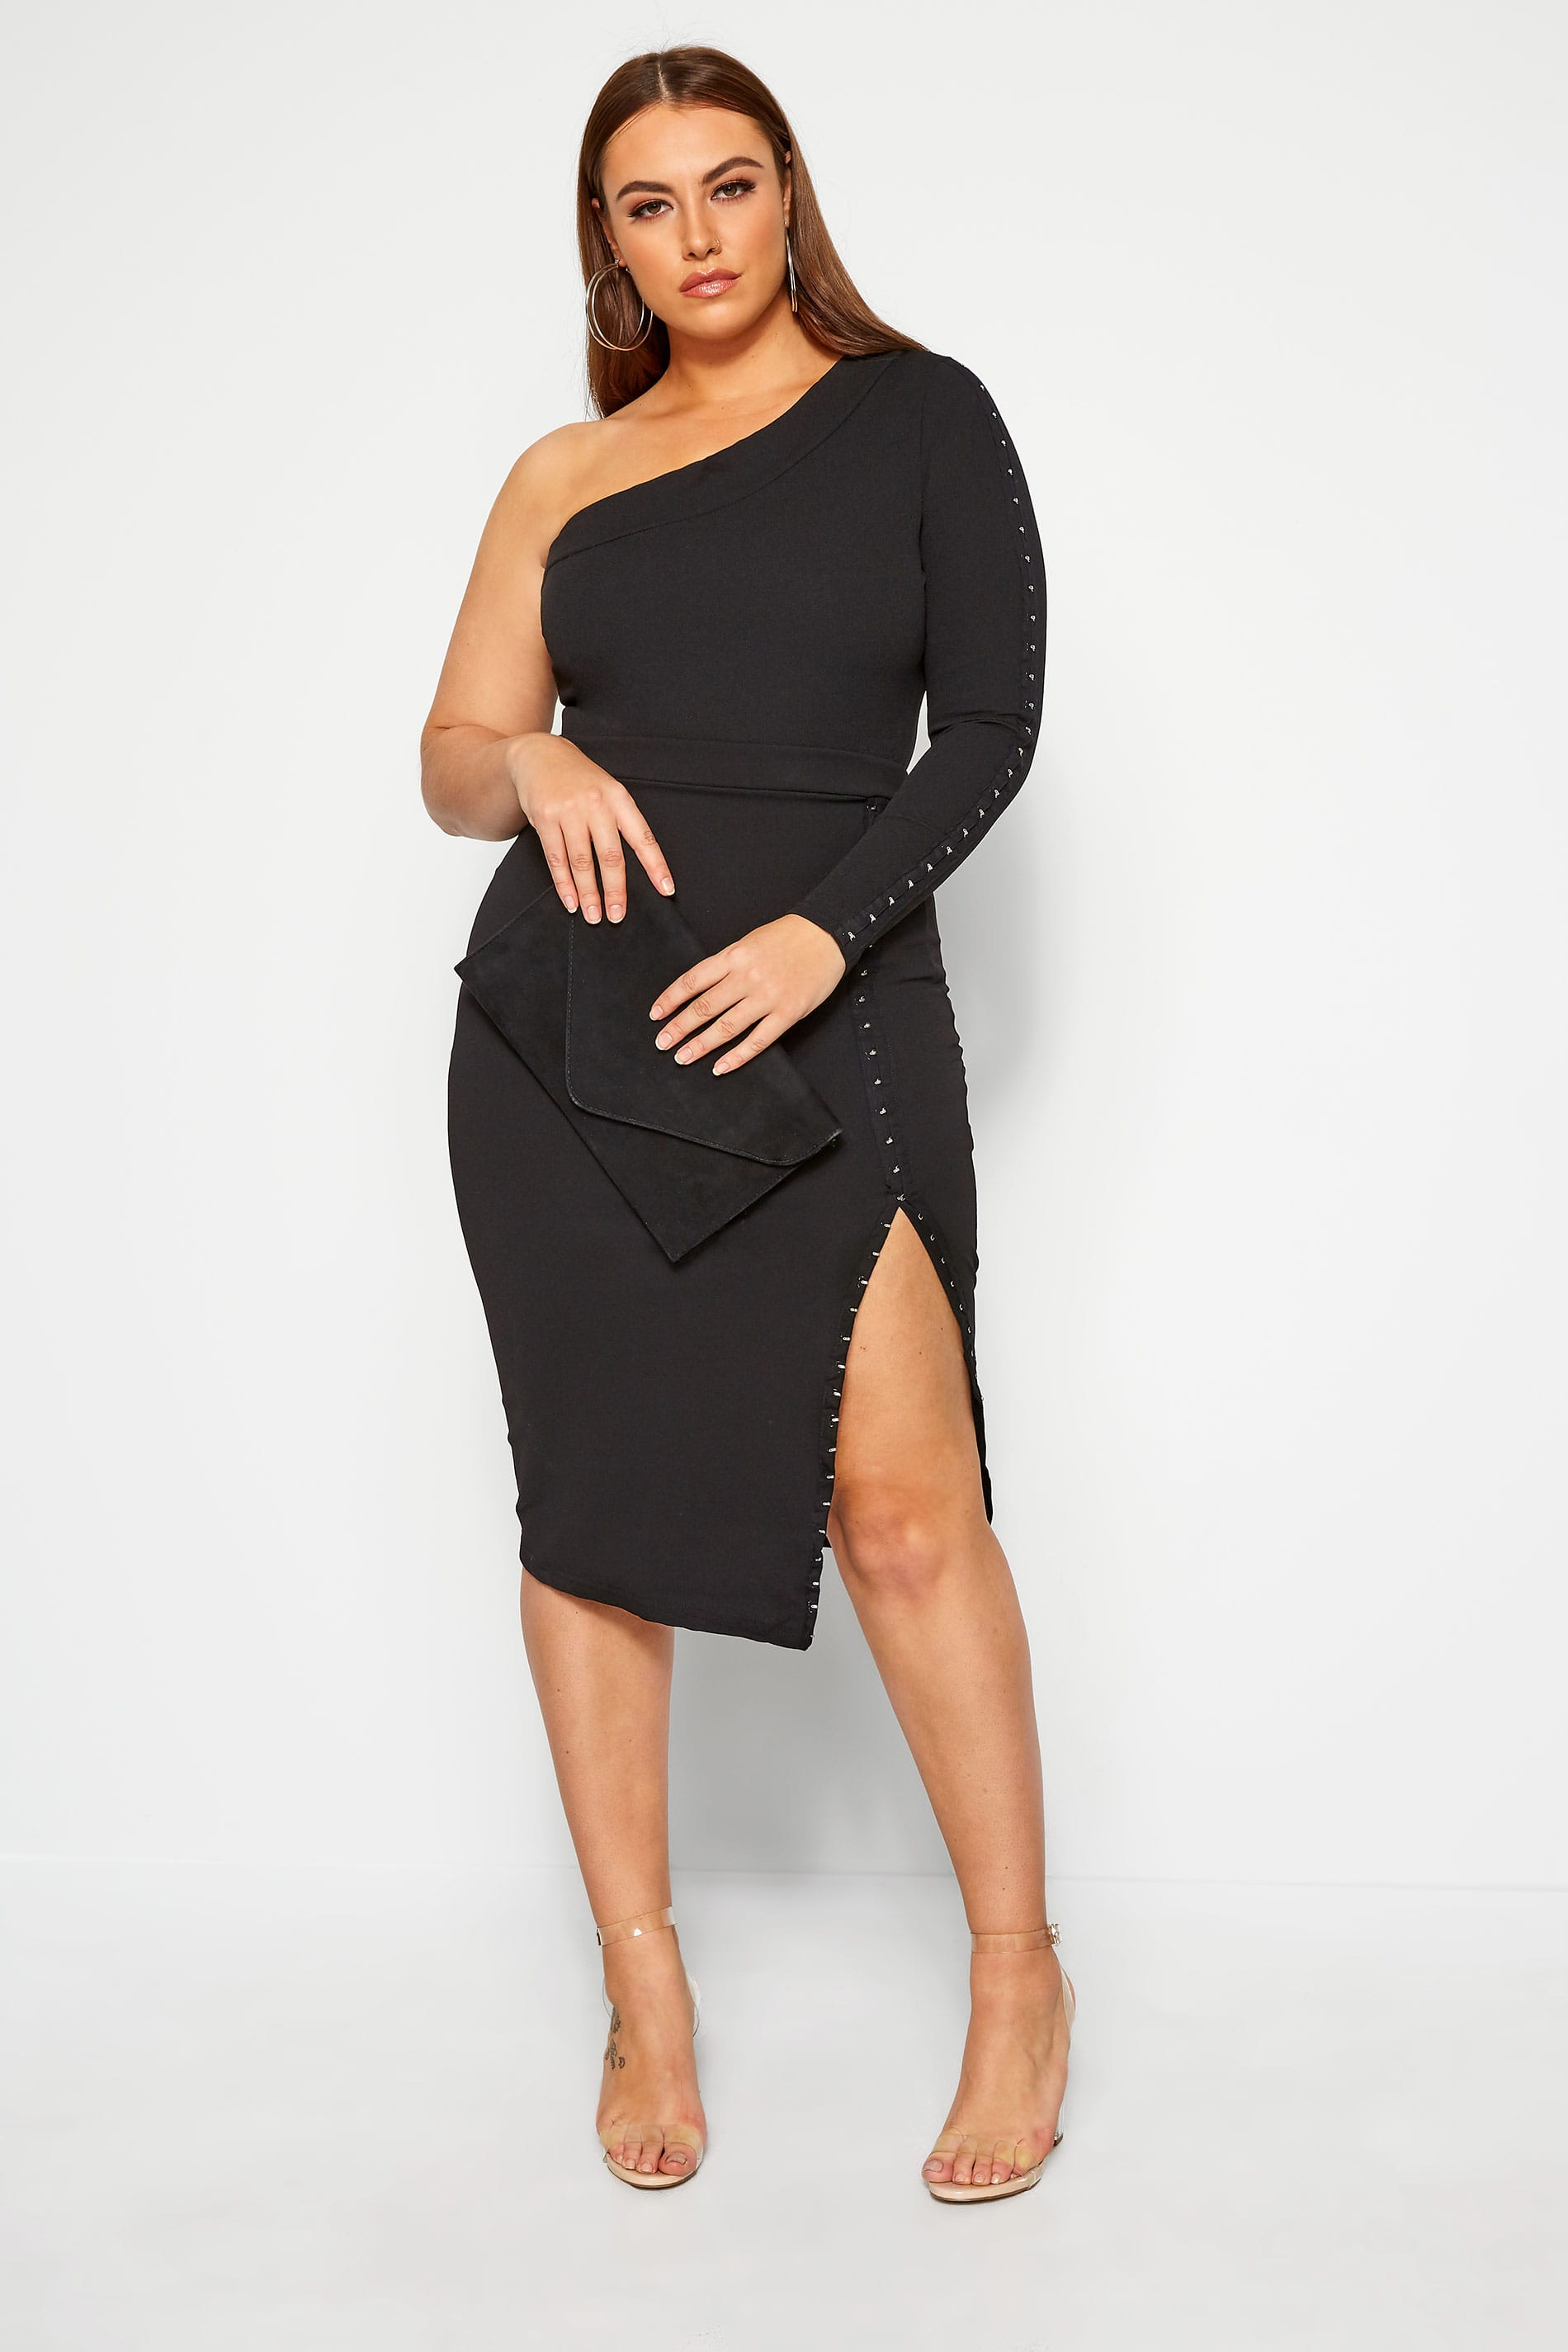 LIMITED COLLECTION Black Hook & Eye Bodycon Midi Skirt